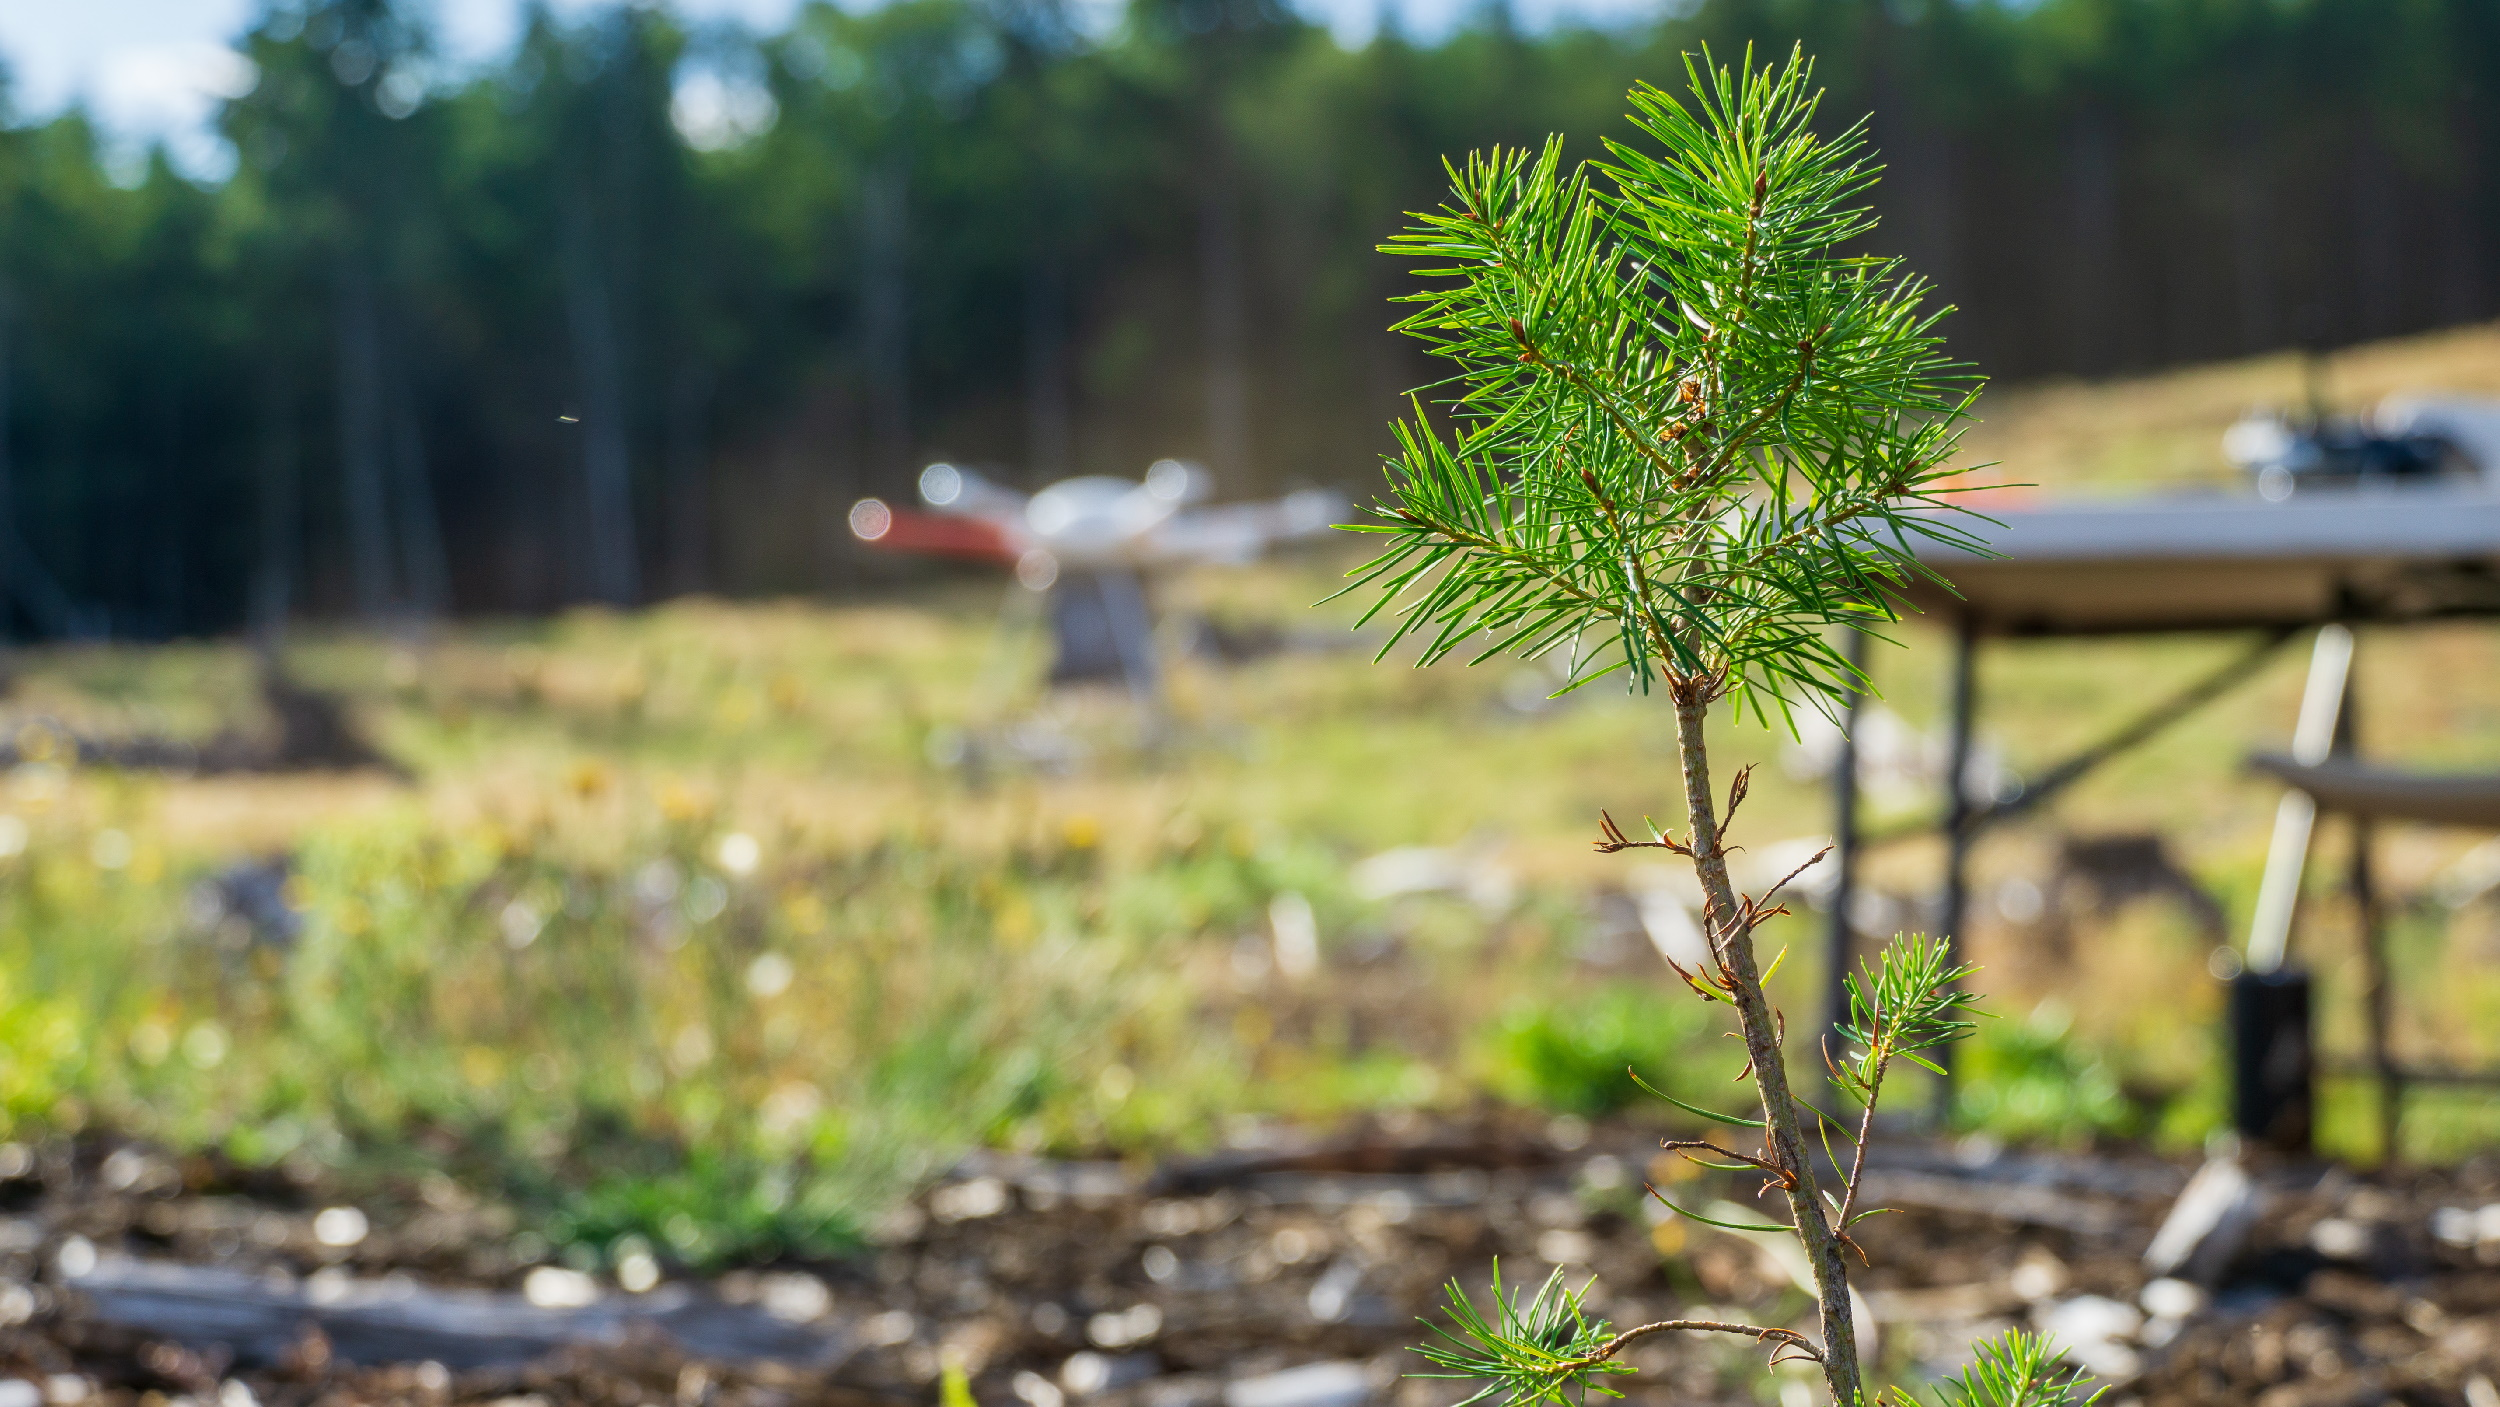 A tree seedling and a drone sitting behind it.